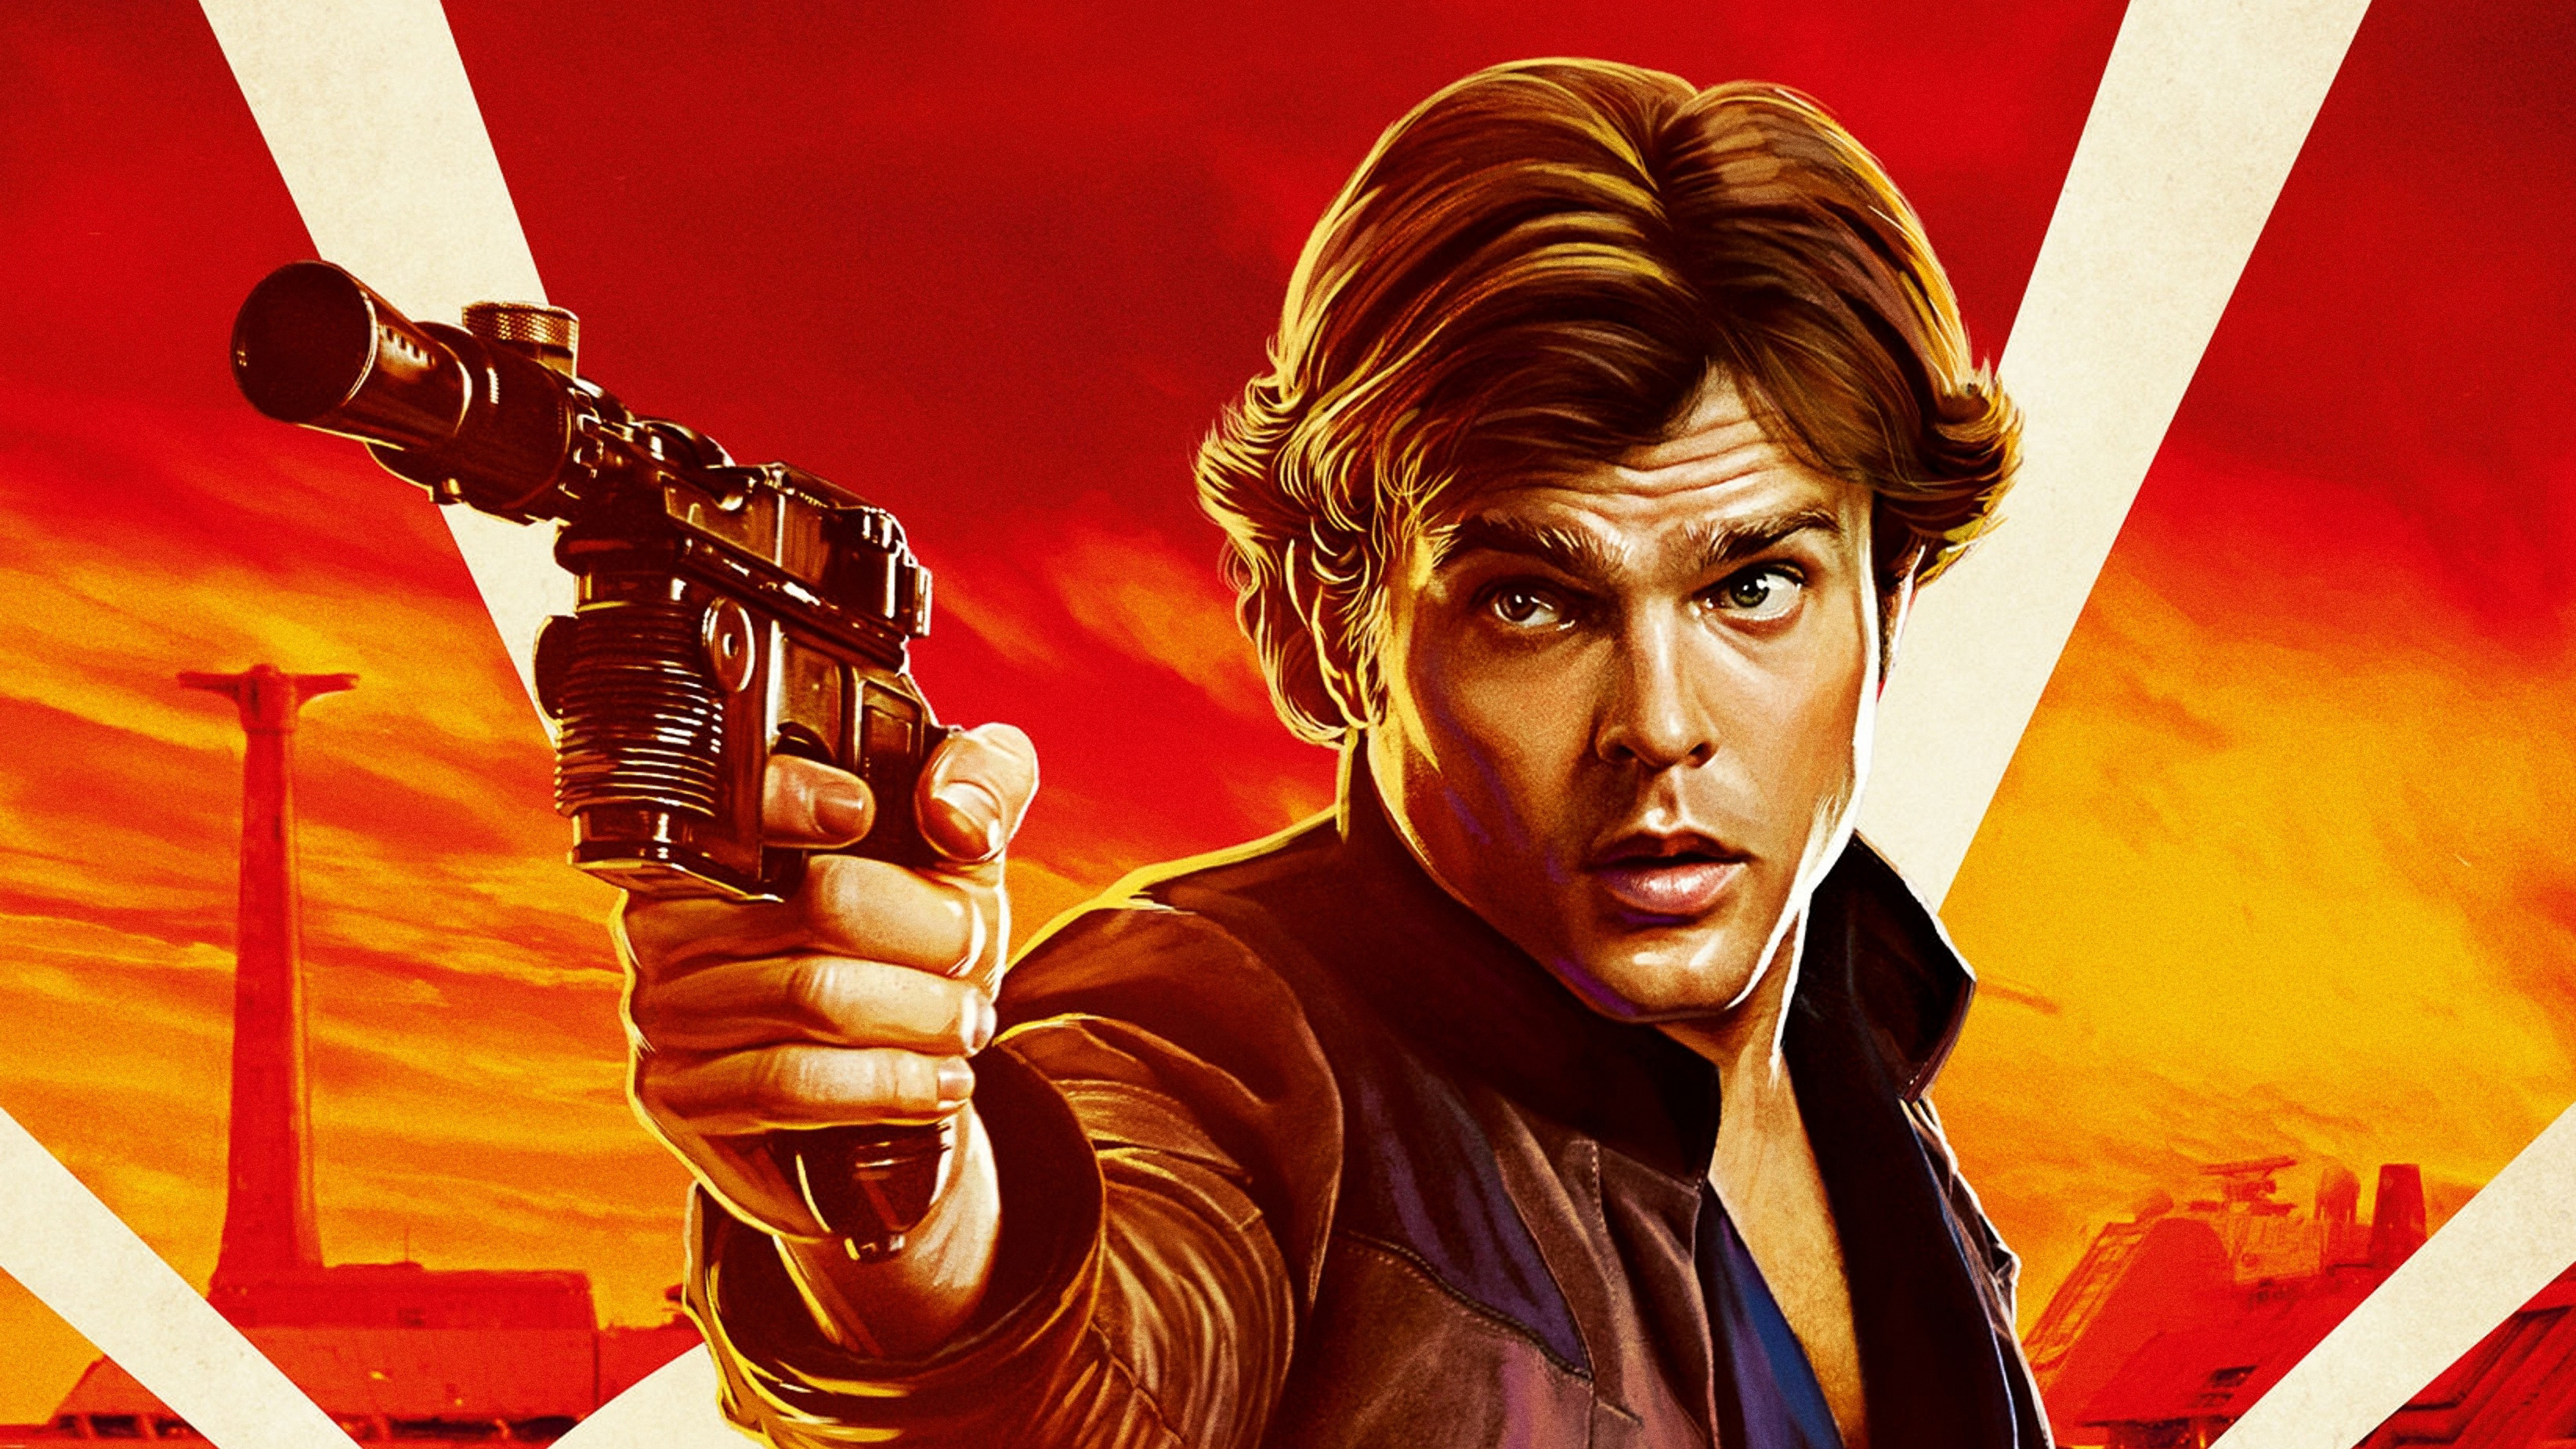 Han Solo In Solo A Star Wars Story Movie Hd Movies 4k Wallpapers